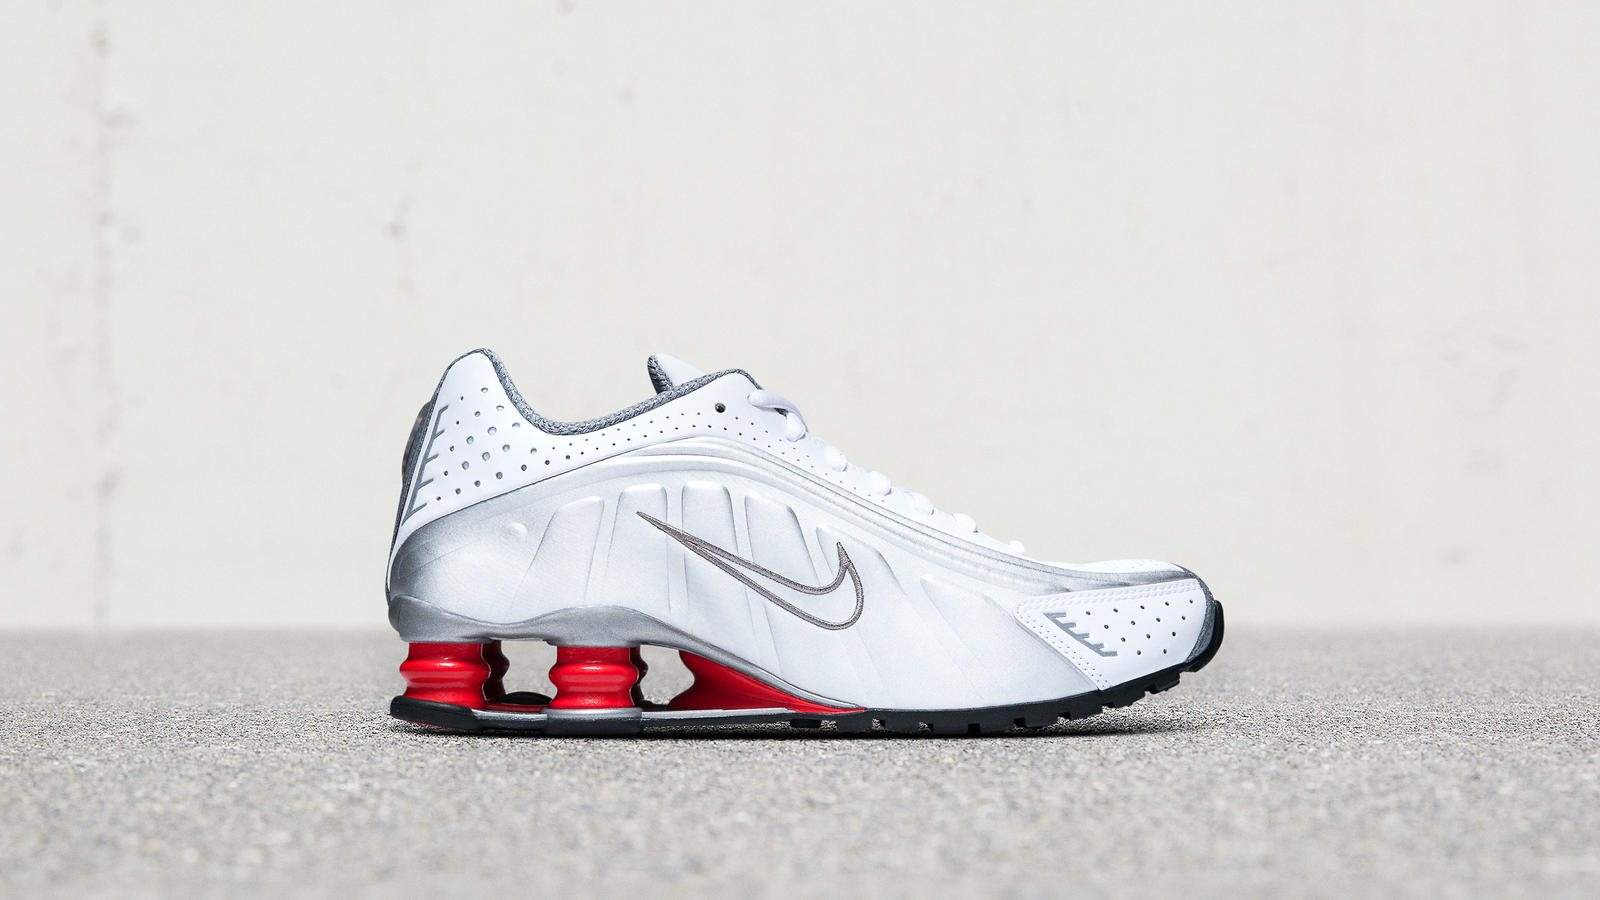 How to Get the Nike Shox R4 3